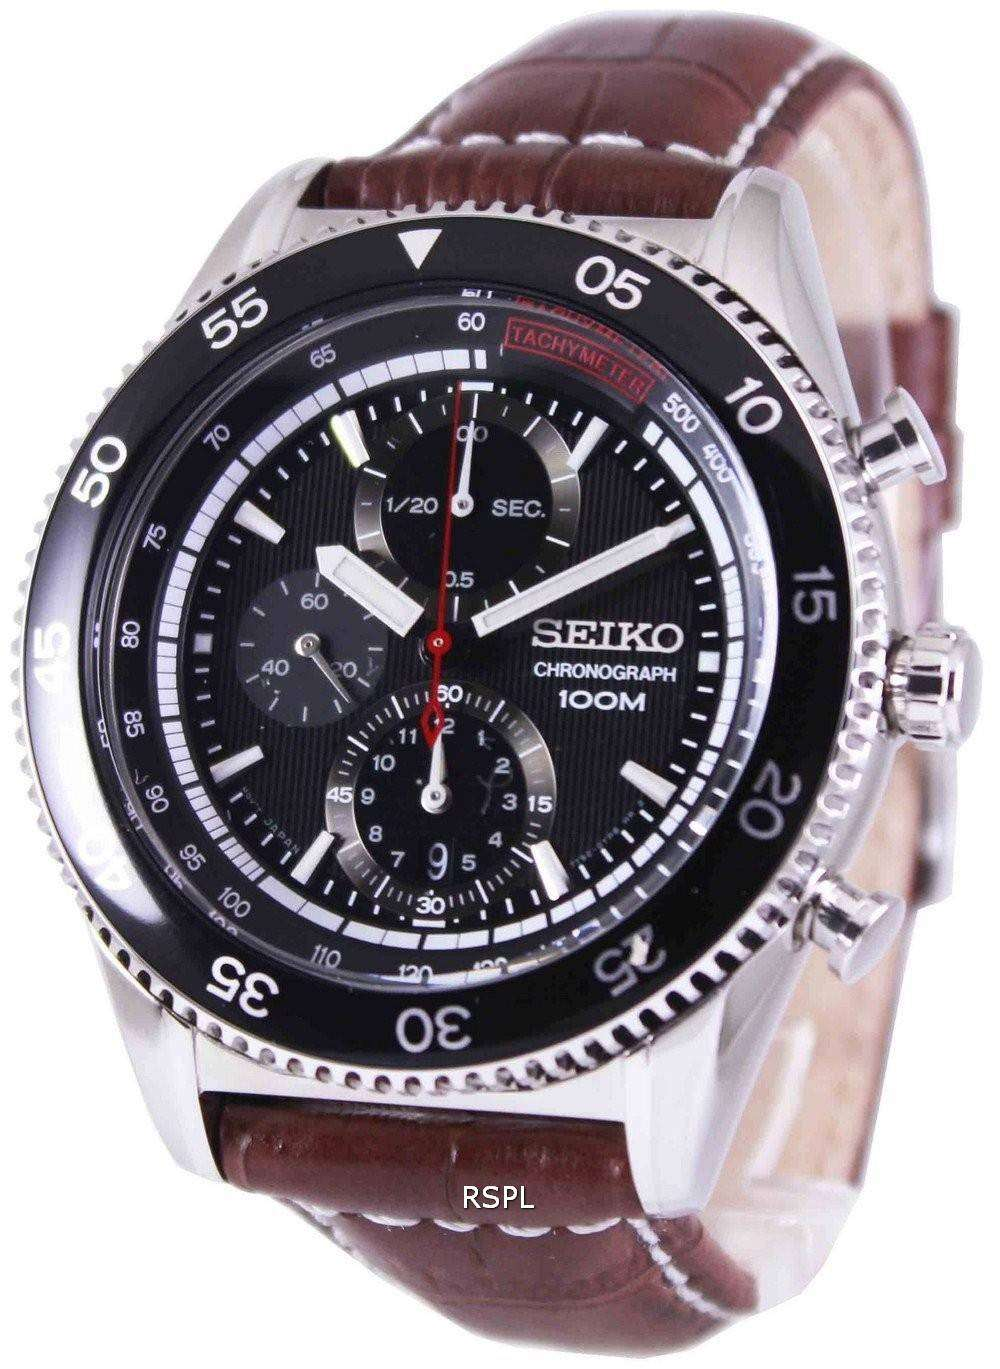 Second Hand Watches >> Seiko Chronograph Tachymeter 100M SNDG57P2 Mens Watch ...